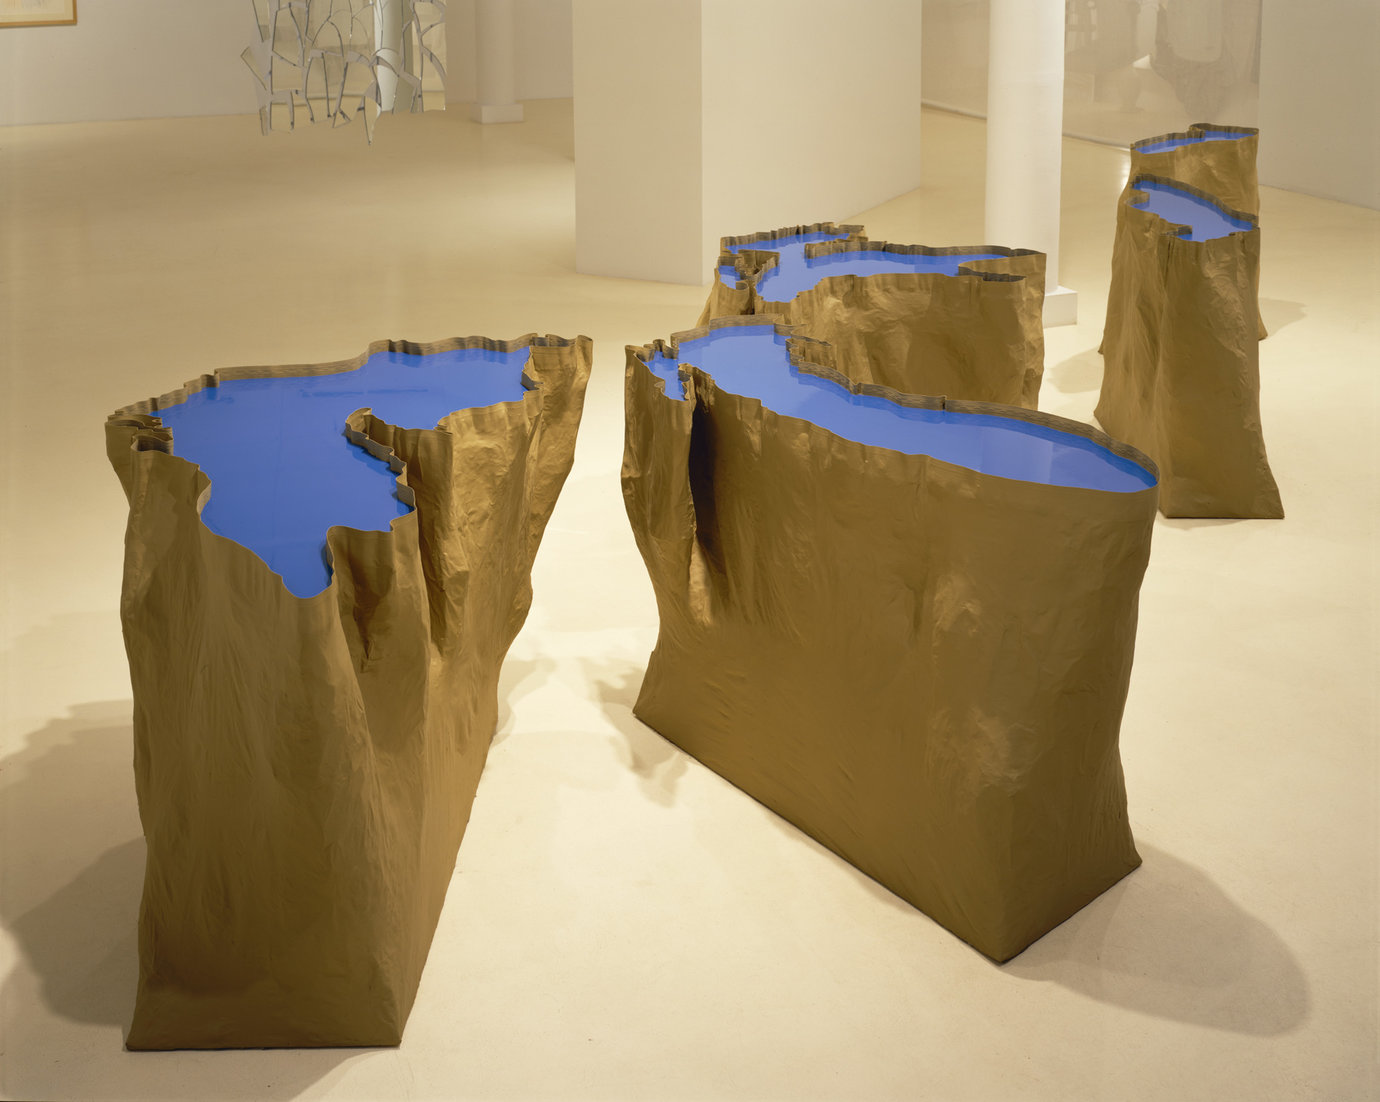 , 1996. Mixed media, installation dimensions variable.